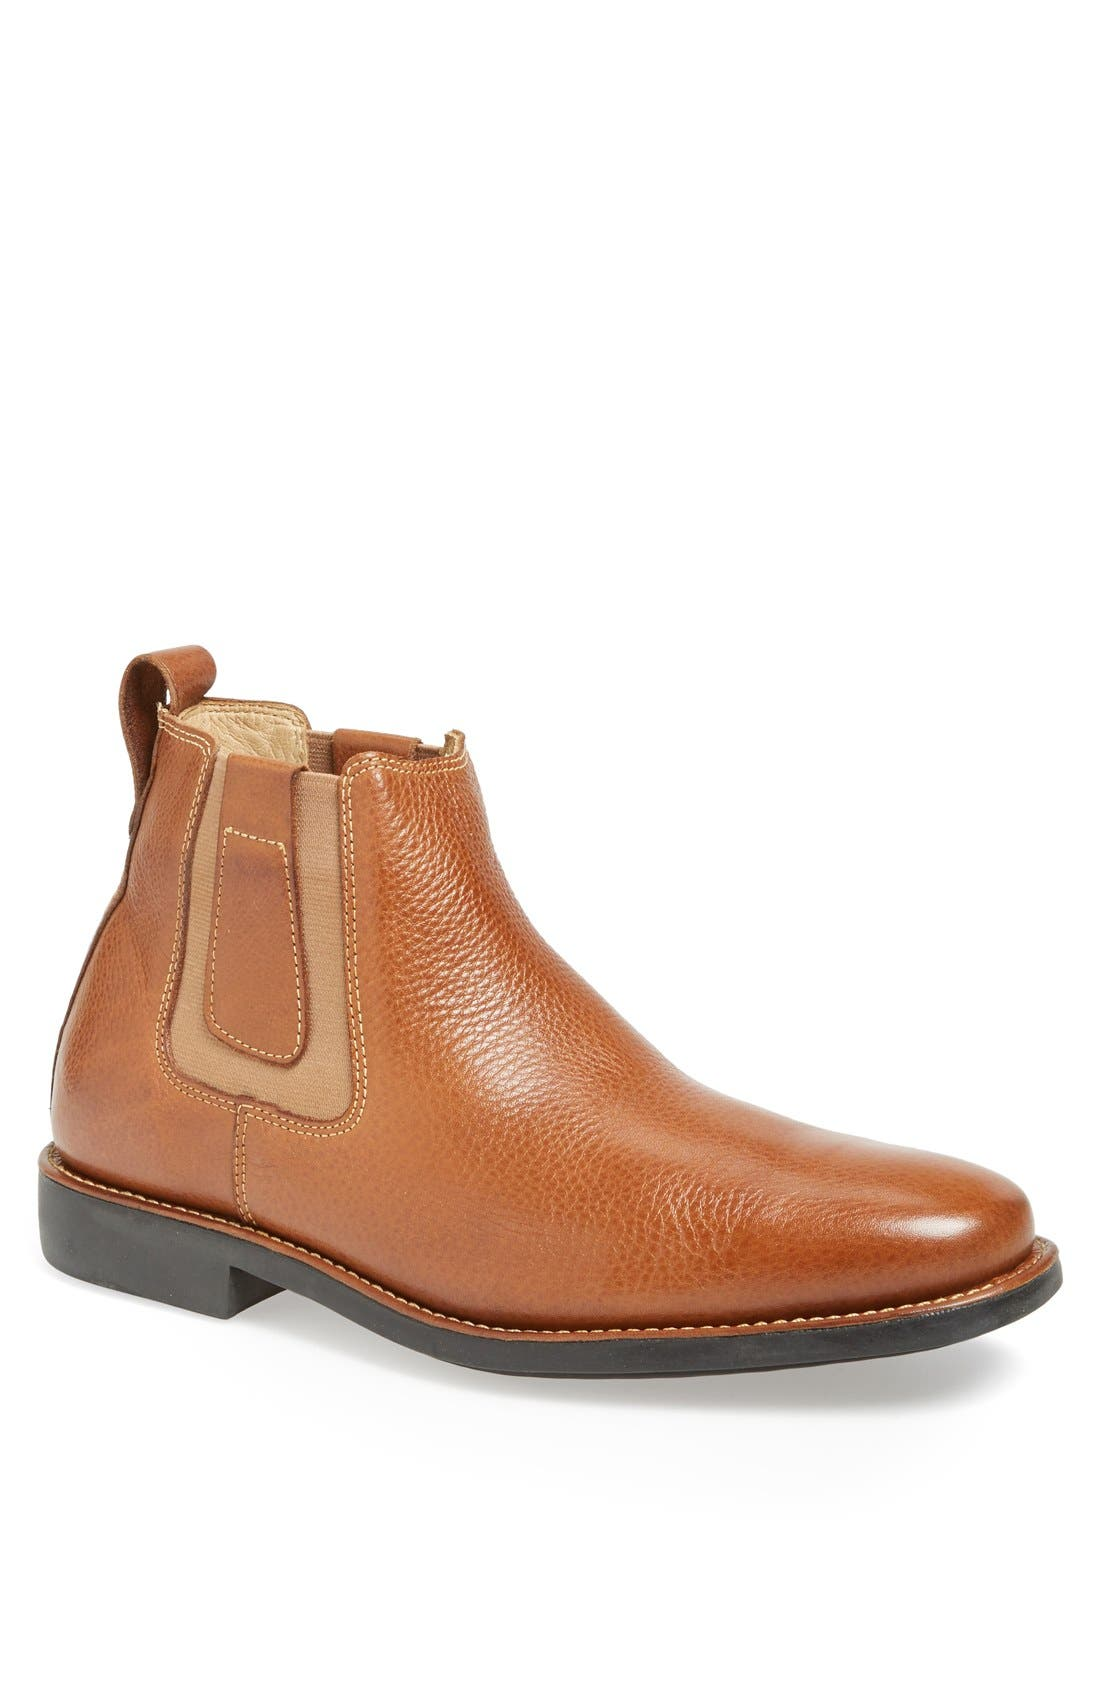 Natal Chelsea Boot,                             Main thumbnail 1, color,                             205